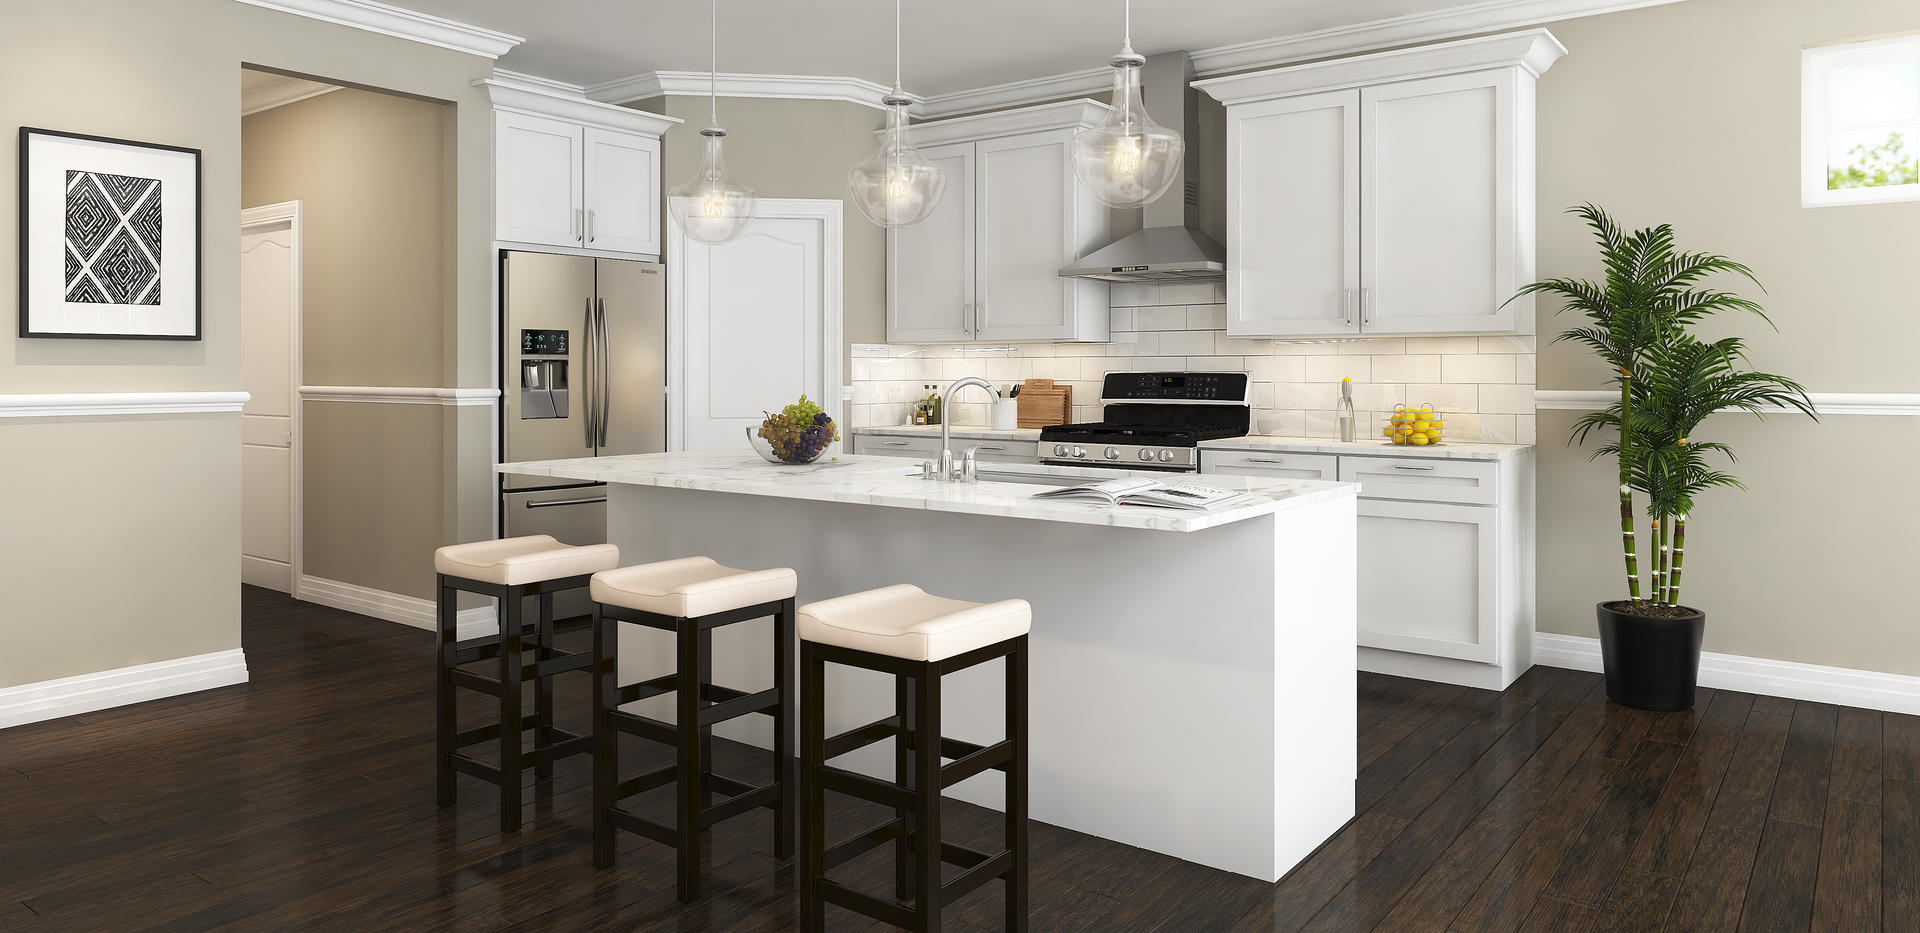 ND_Olympia Homes- Interior-3_Kthcen.png